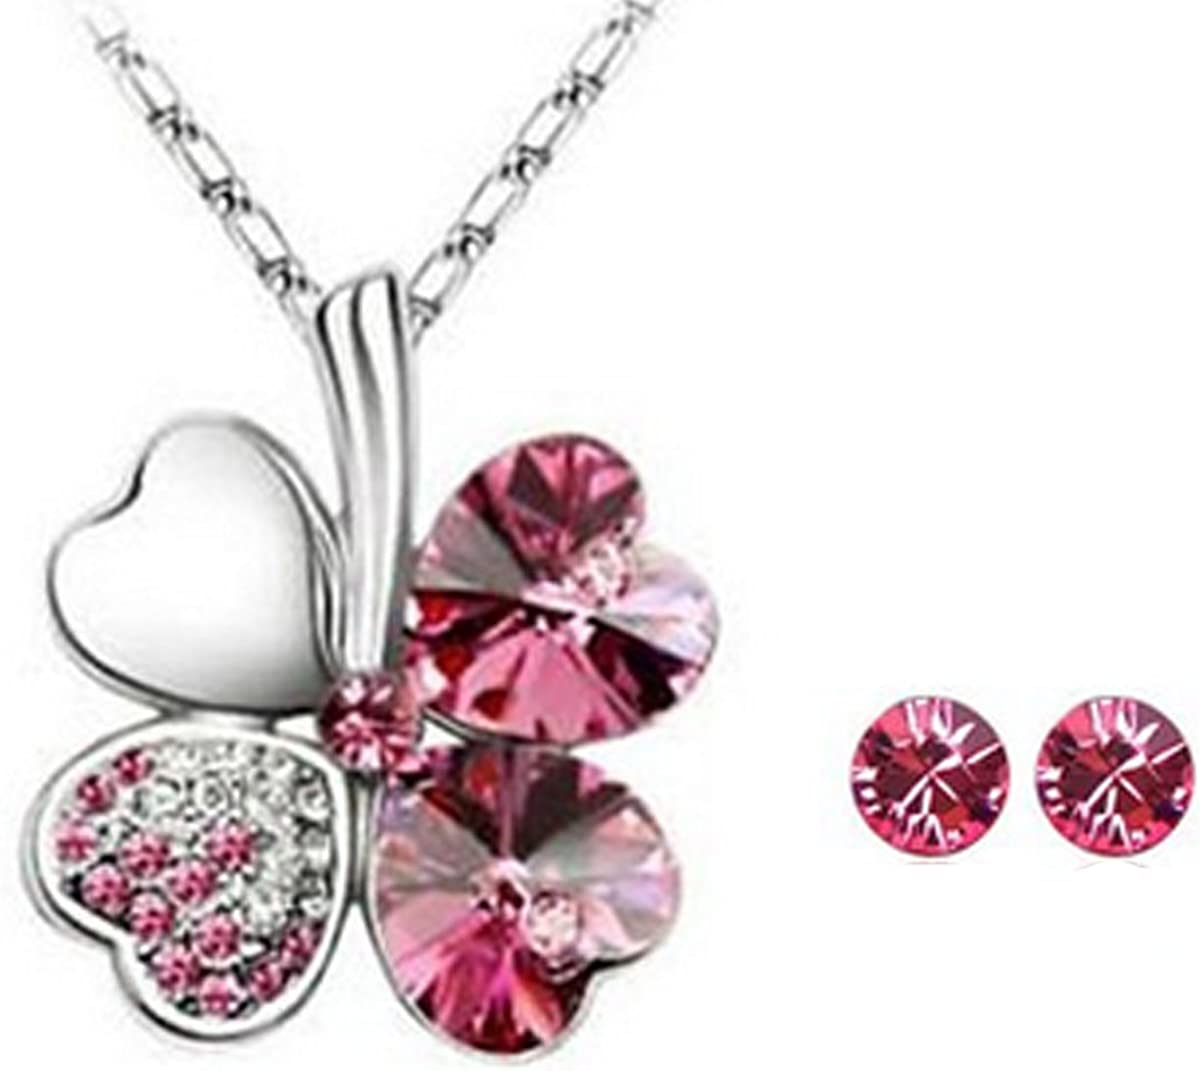 Wrapables Gold Plated Swarovski Elements Crystal Heart Shaped Four Leaf Clover Pendant Necklace and Stud Earrings Jewelry Set (Rose Red)